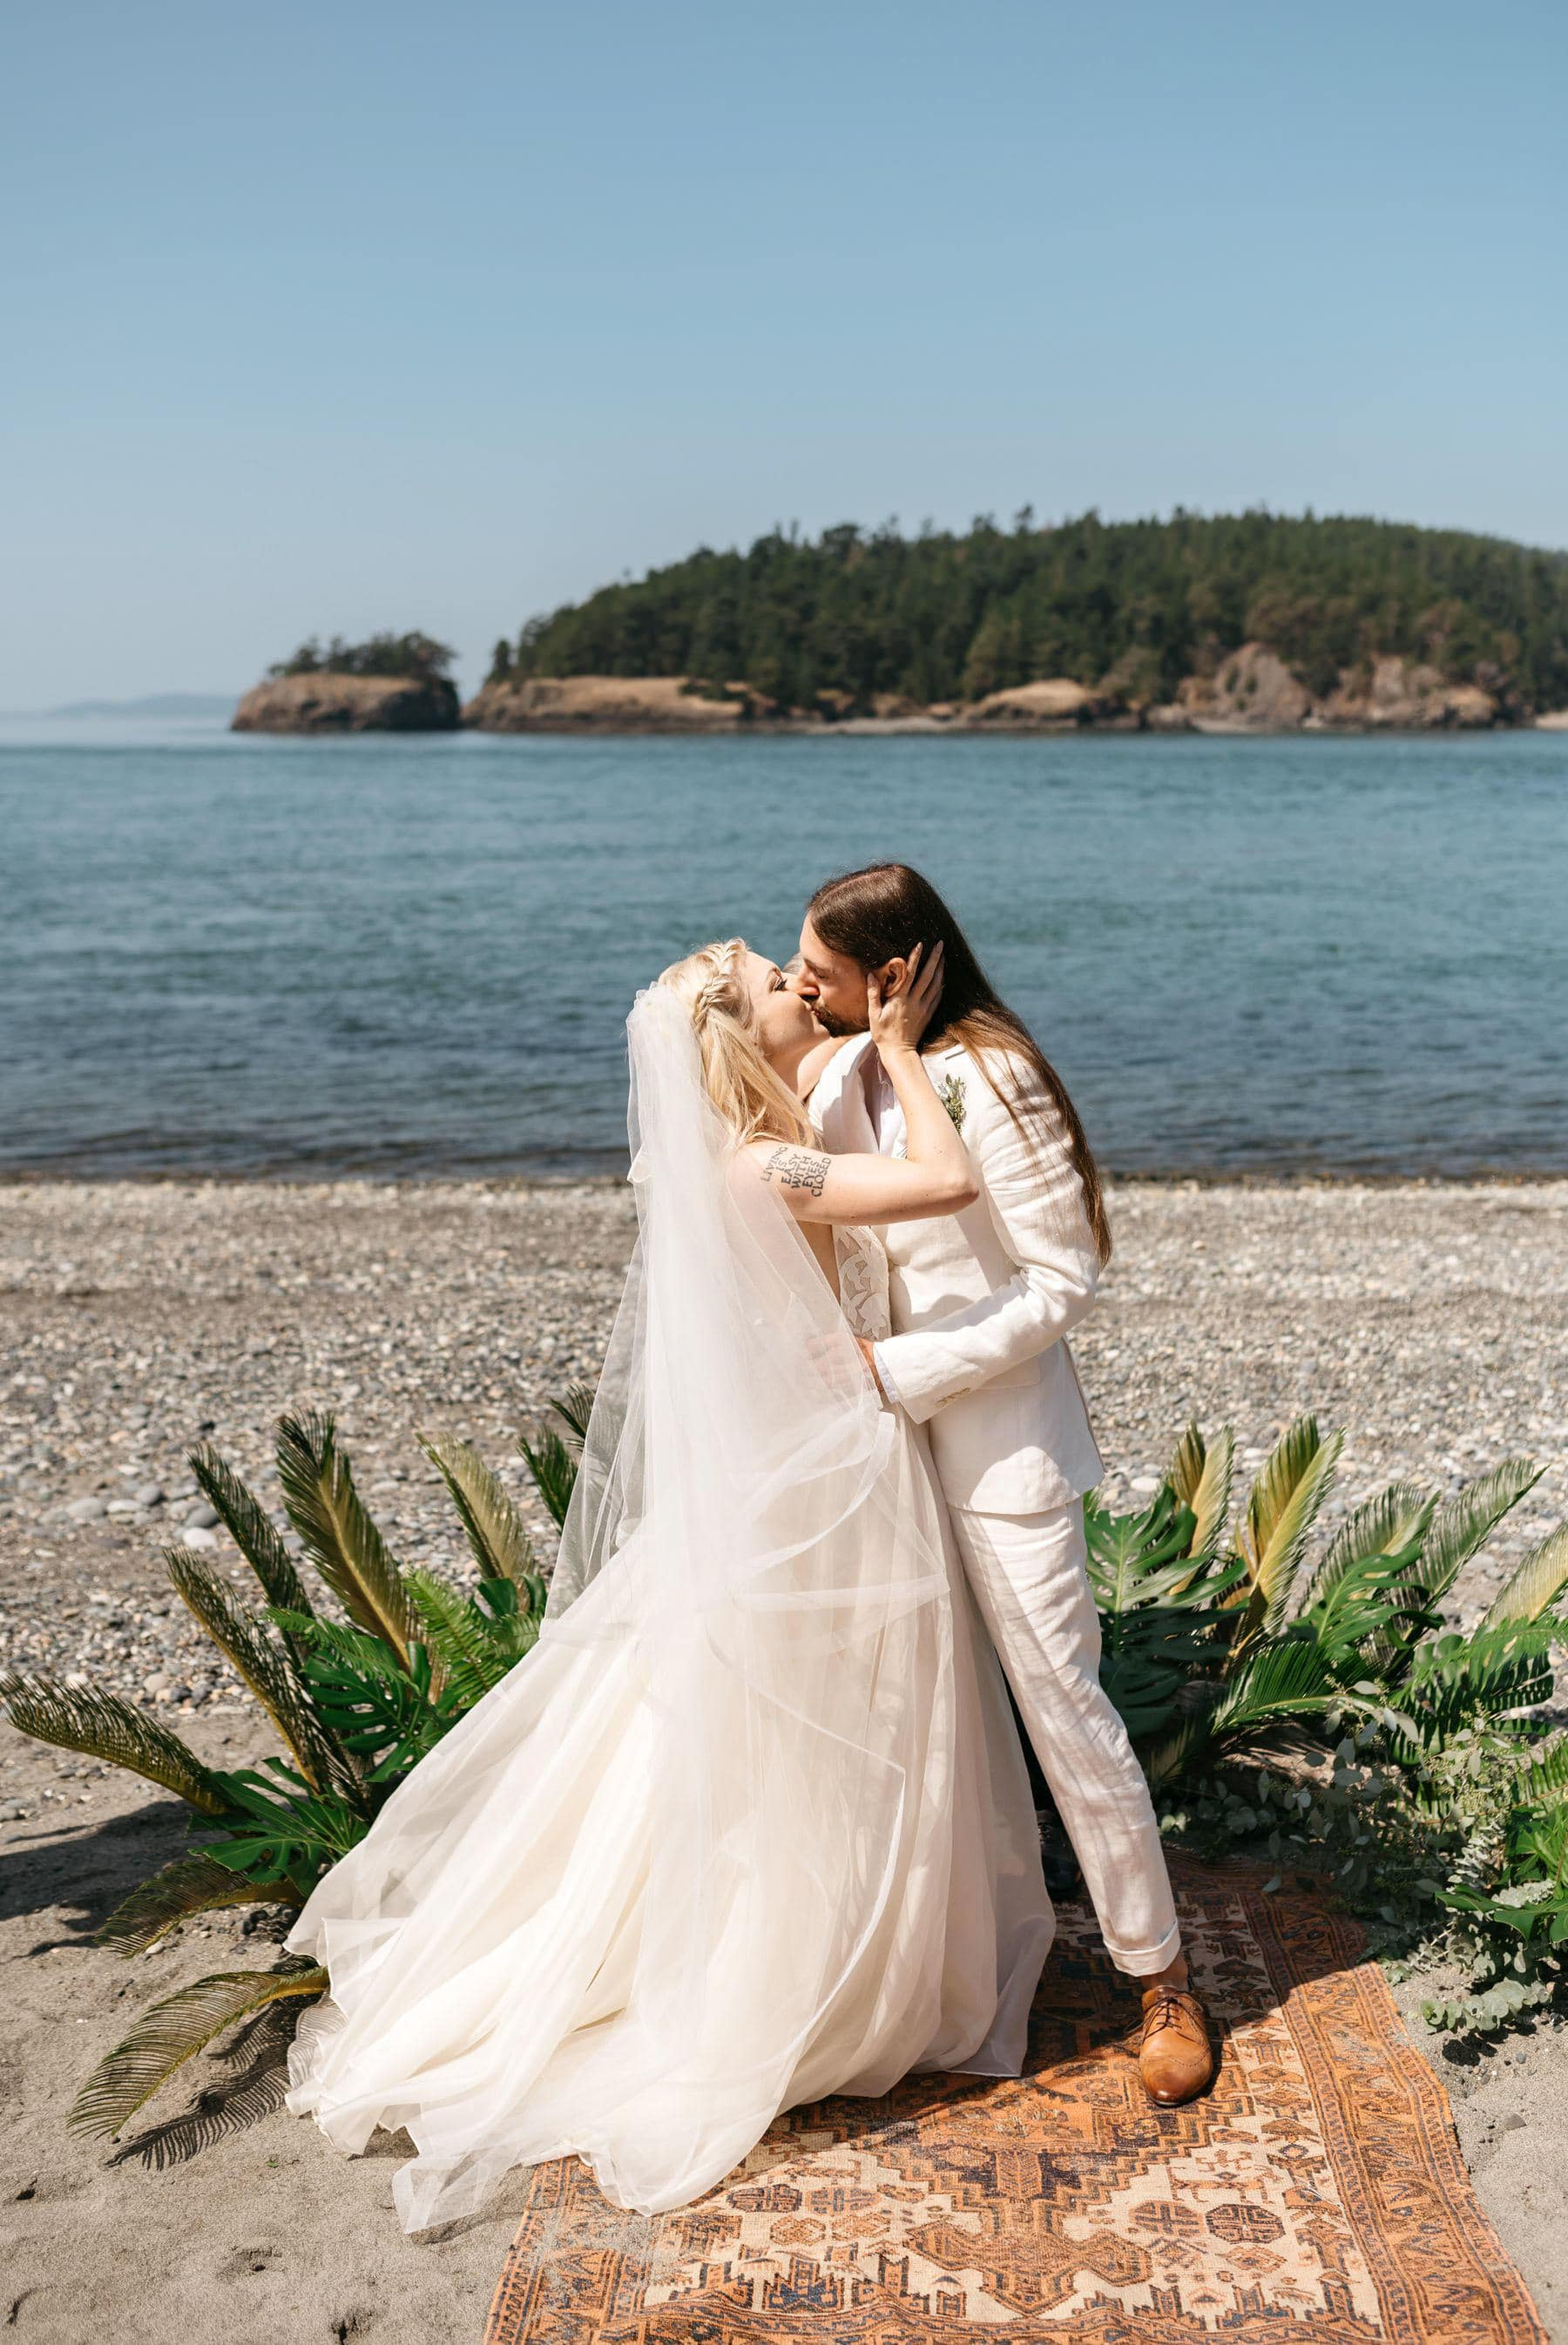 deception pass wedding on beach